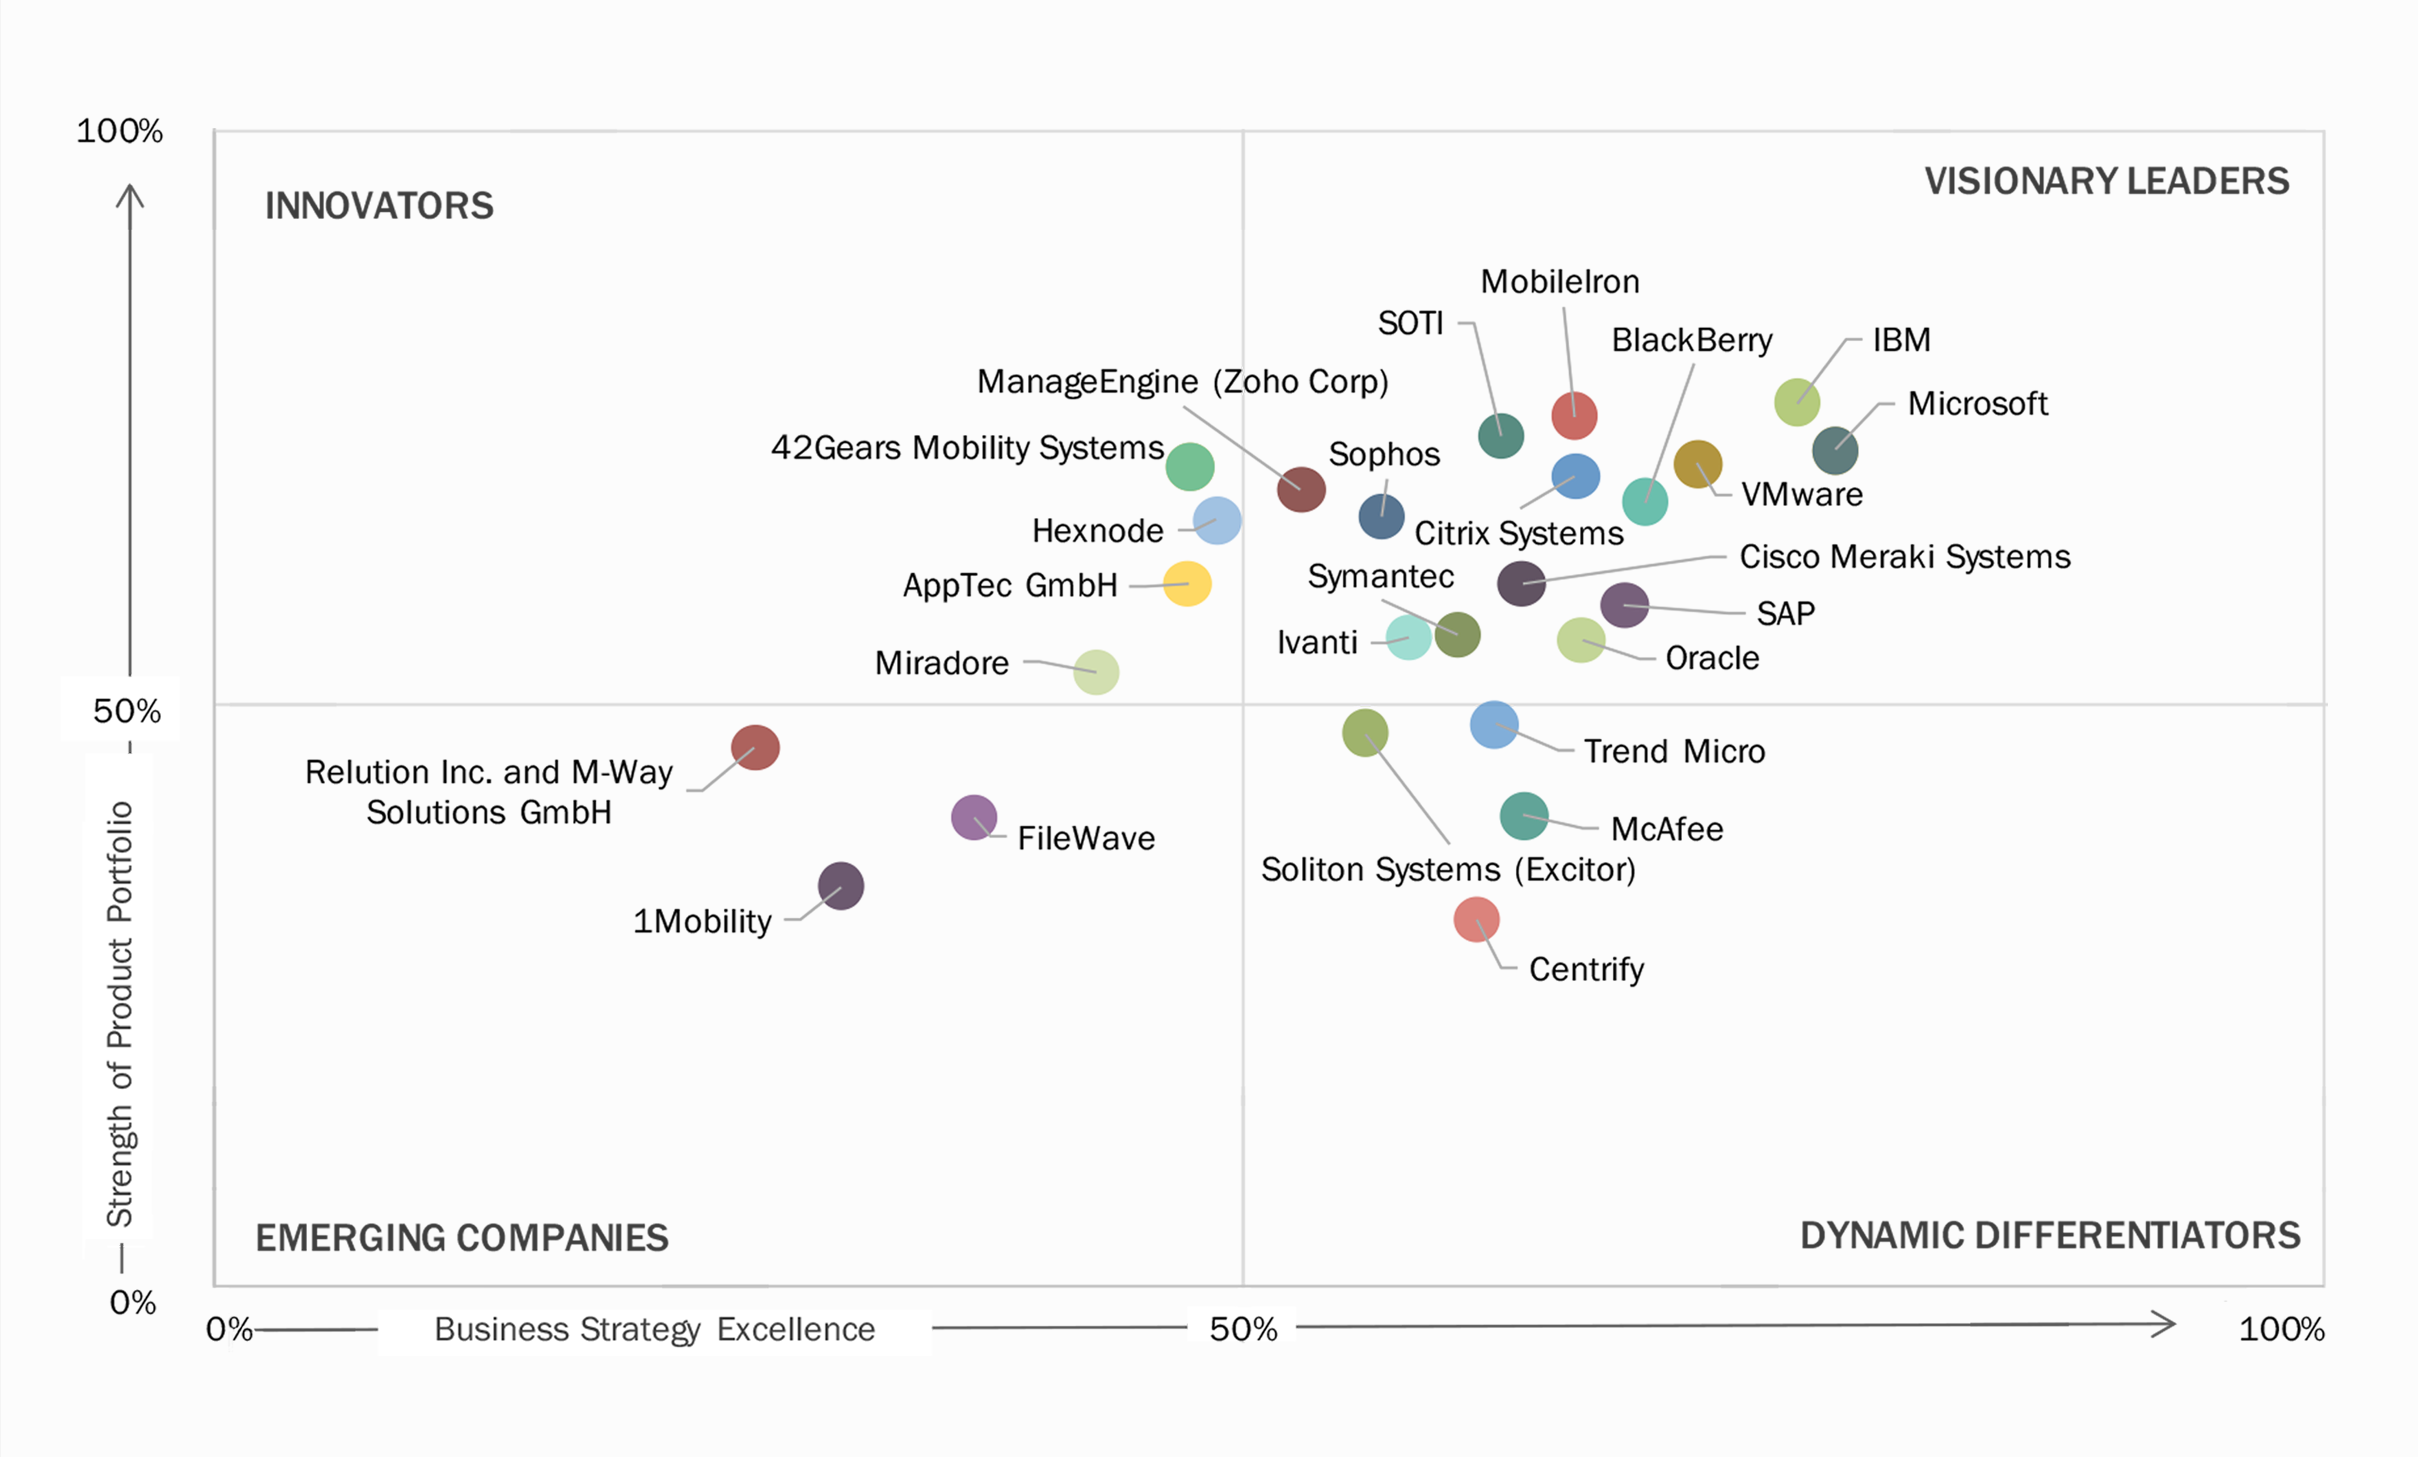 MarketsandMarkets' Microquadrant is Out, Hexnode MDM Positioned High Among Innovators